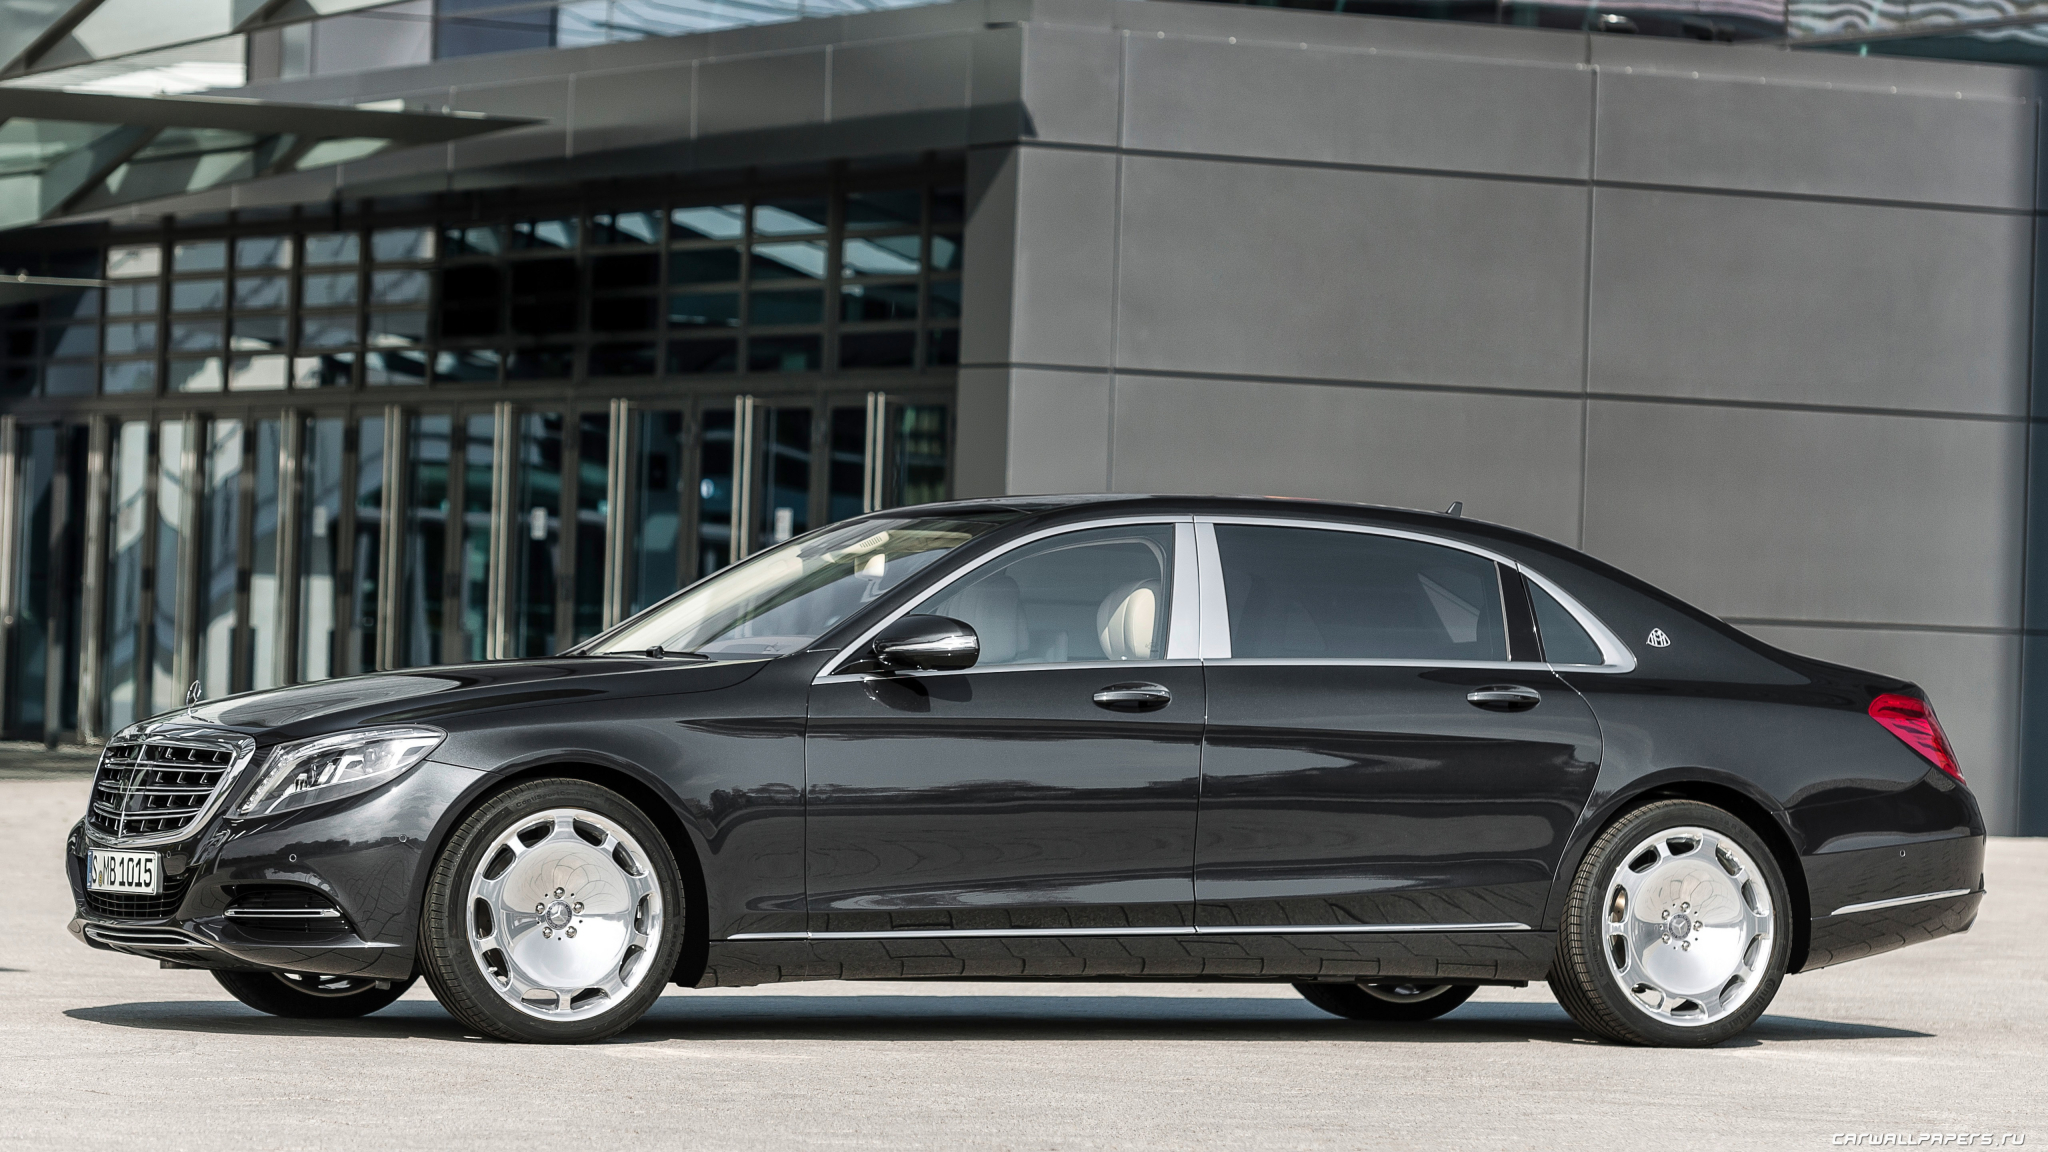 mercedes-maybach s600 hd wallpapers free download